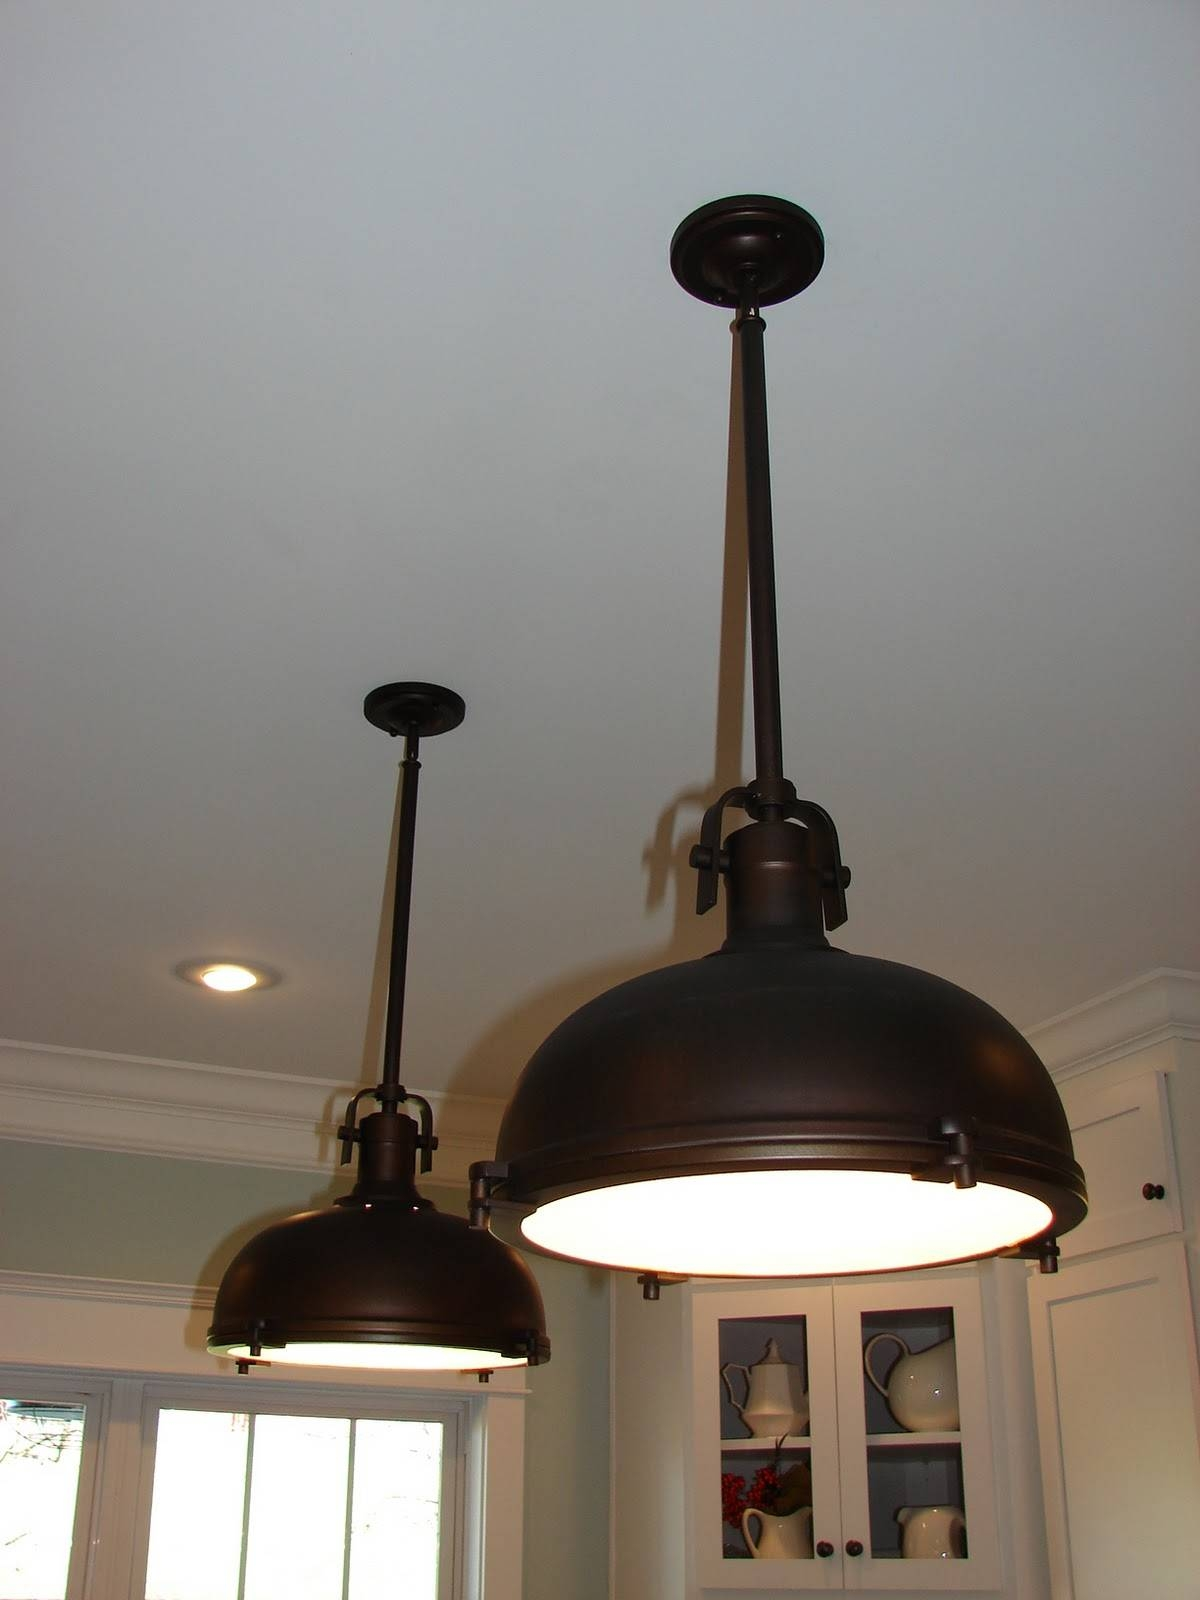 Decorative Barn Pendant Light Fixtures — Crustpizza Decor For Barn Pendant Lights (View 13 of 15)